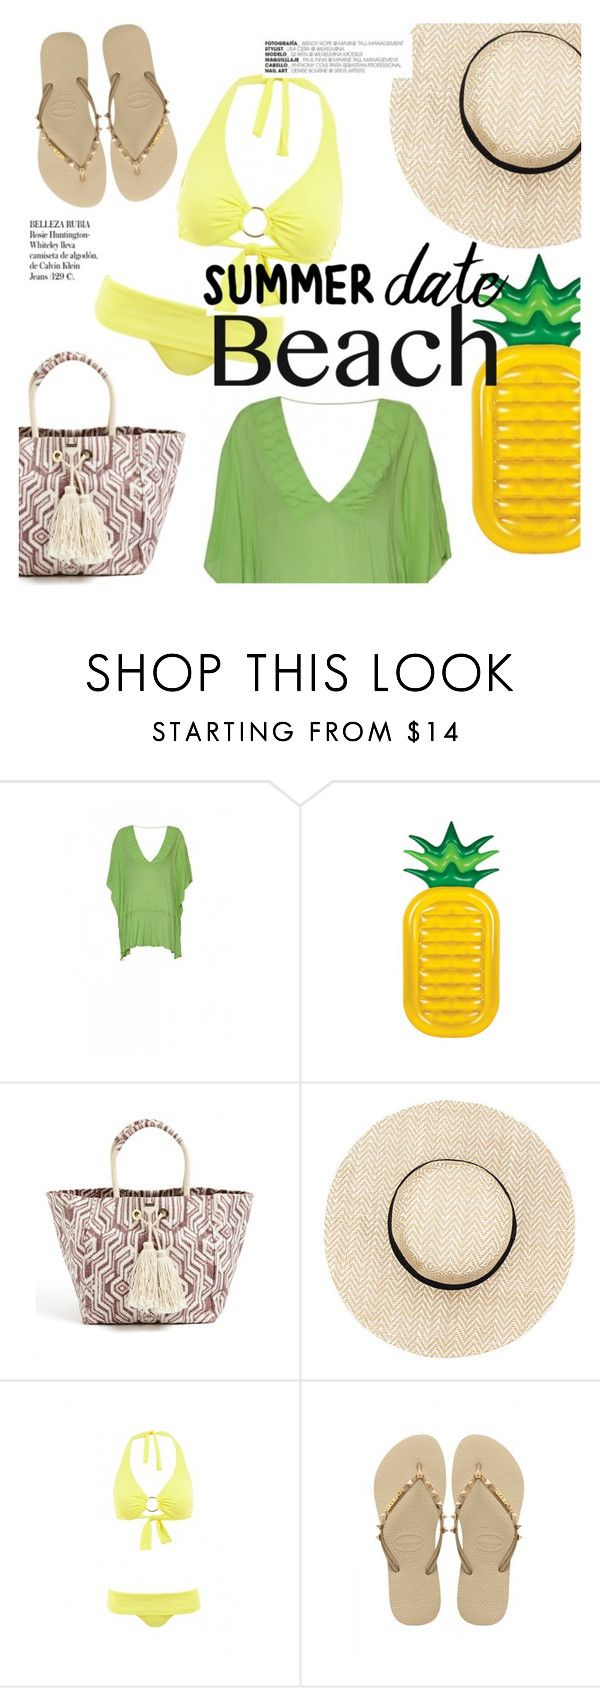 """Summer Date: The Beach"" by sanddollardubai on Polyvore featuring ViX, Melissa Odabash, Whiteley, Havaianas, beach and summerdate"